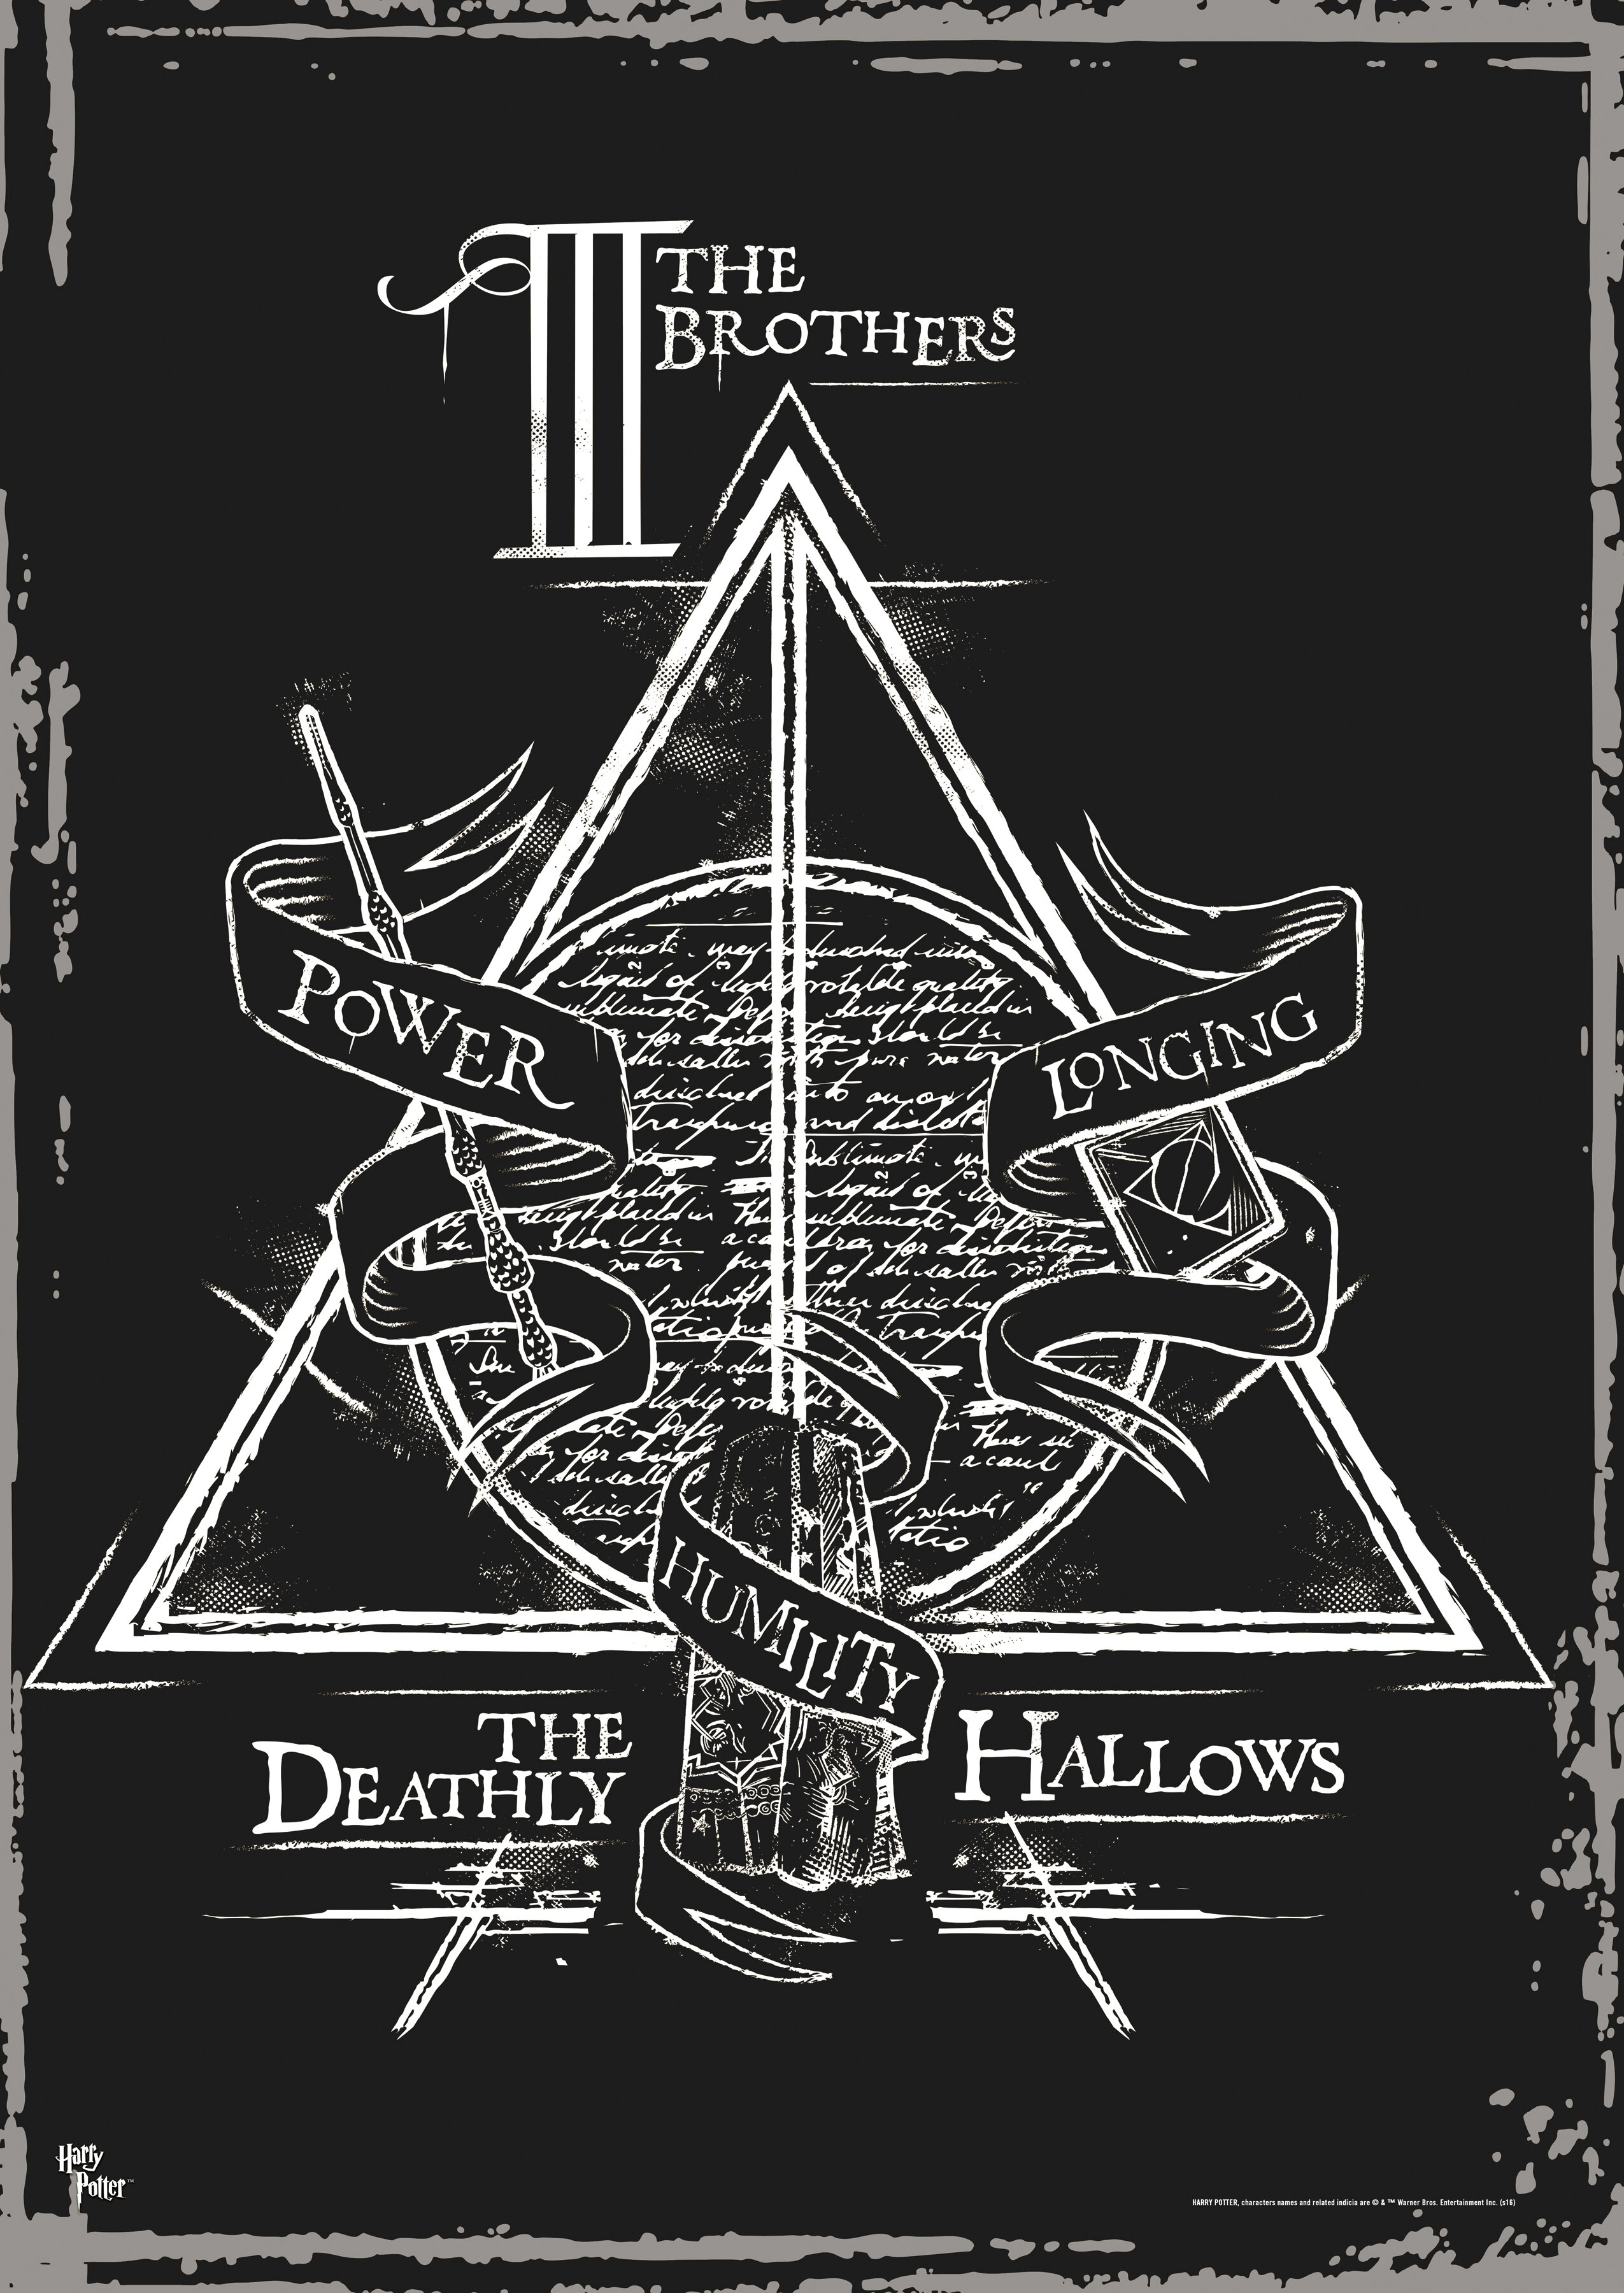 Mightyprint harry potter deathly hallows the brothers graphic mightyprint harry potter deathly hallows the brothers graphic art reviews wayfair biocorpaavc